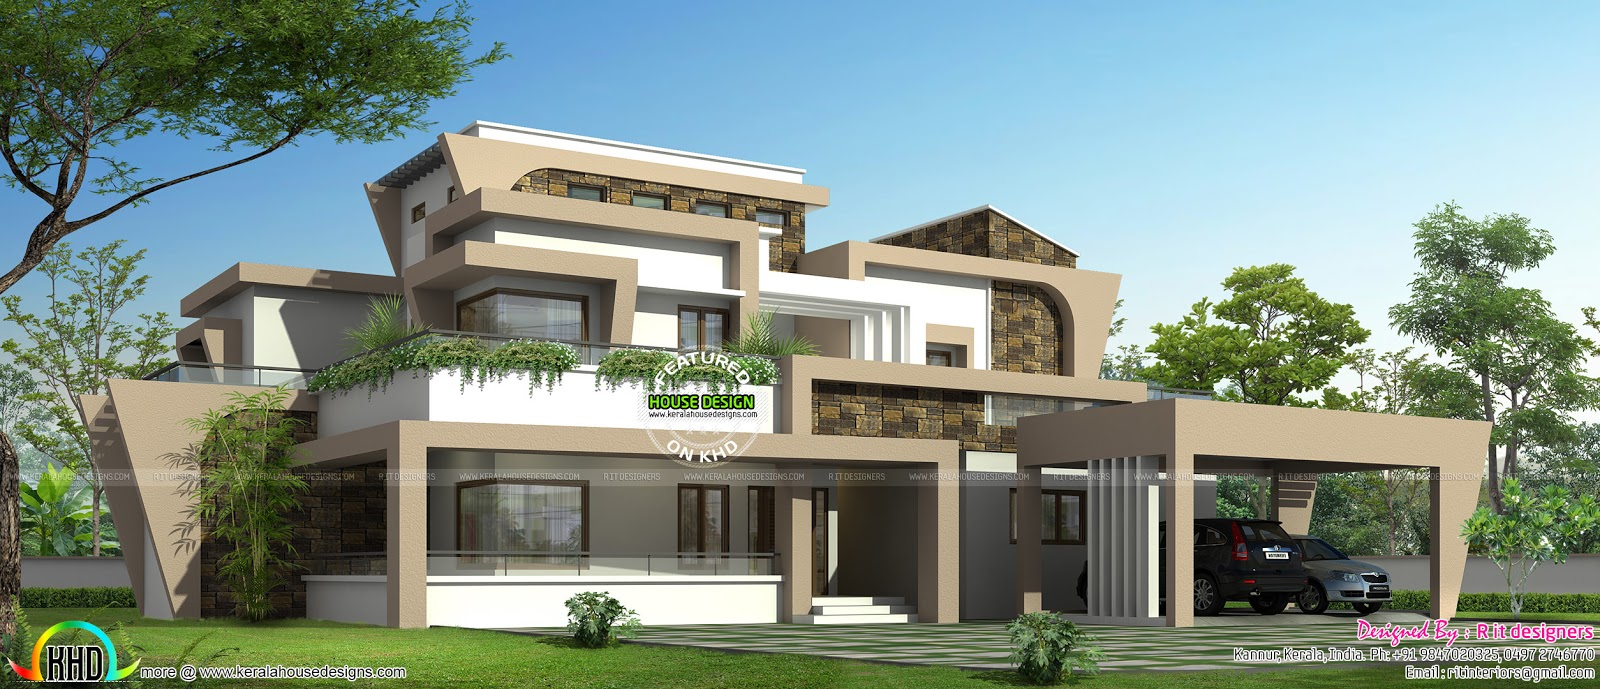 Unique modern home design in kerala kerala home design for Unique modern home plans